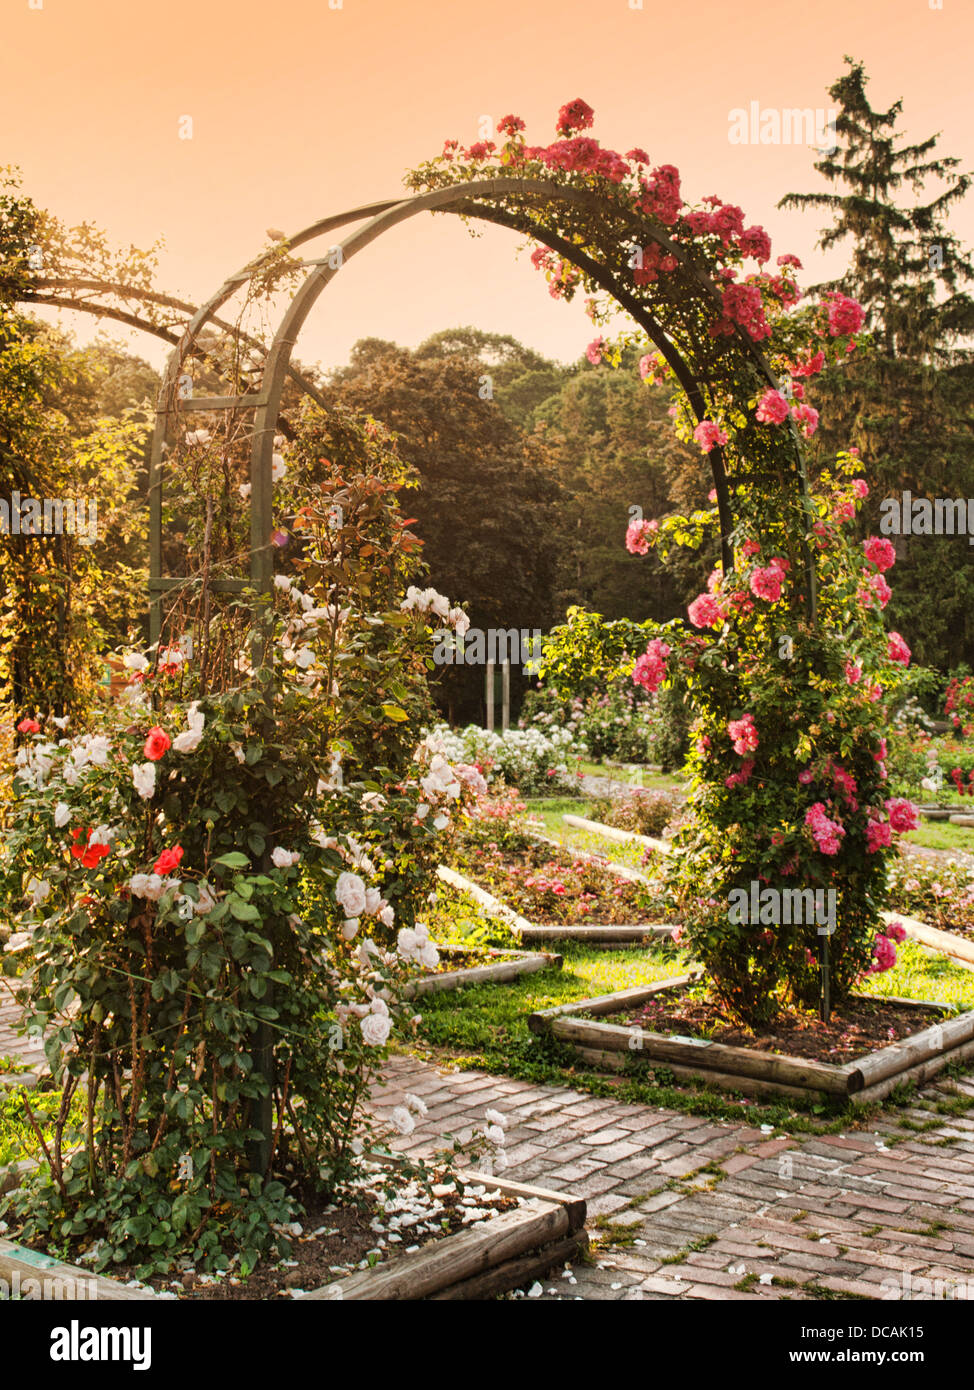 Attrayant Rose Garden With Trellis In The Morning   Stock Image